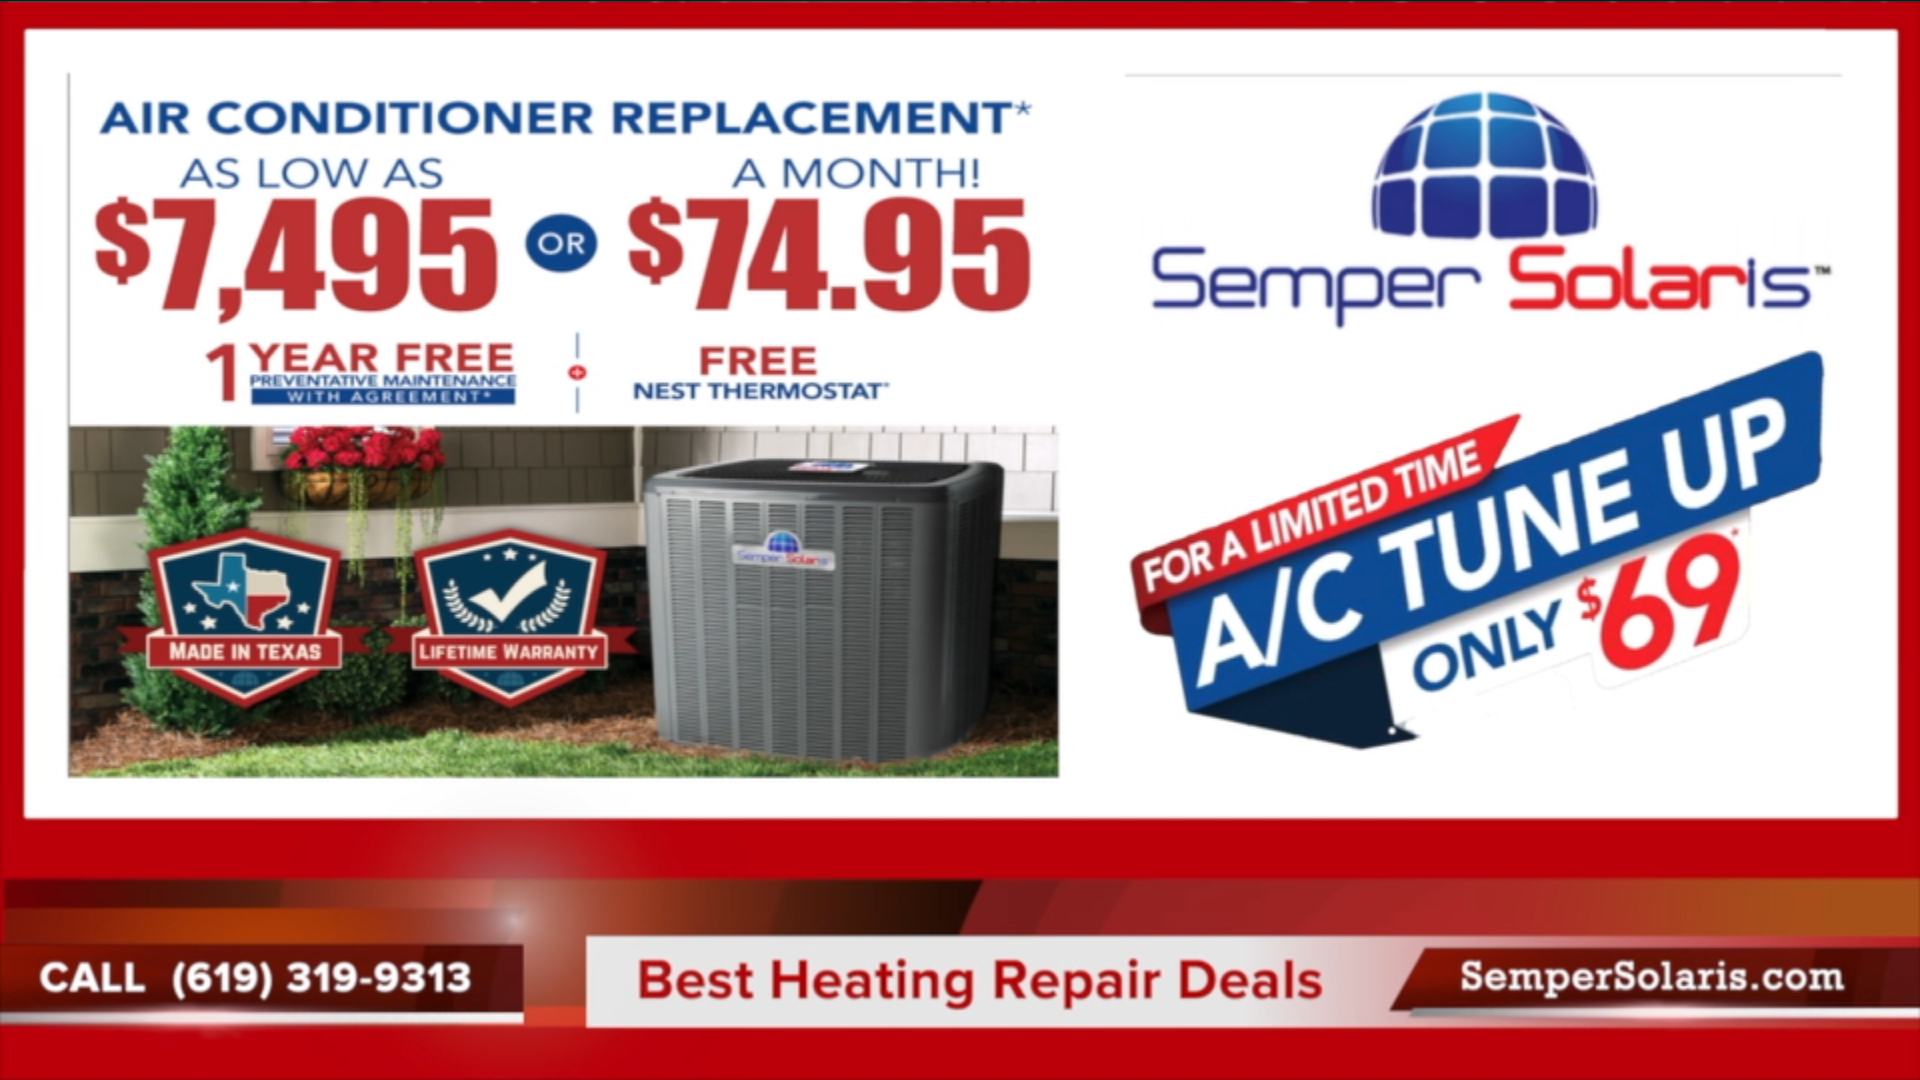 Heating Repair Service Bonita, Bonita Heating Repair services, Bonita HVAC Special Offers, Best Bonita HVAC Special Offer , Bonita heating Special Offers,  Bonita HVAC Special deals,  Bonita HVAC Special Offer, Best Bonita HVAC Special Offers, Best Heating Repair in Bonita Ca, Heating Repair special offers in Bonita Ca,  Heating Repair Bonita,